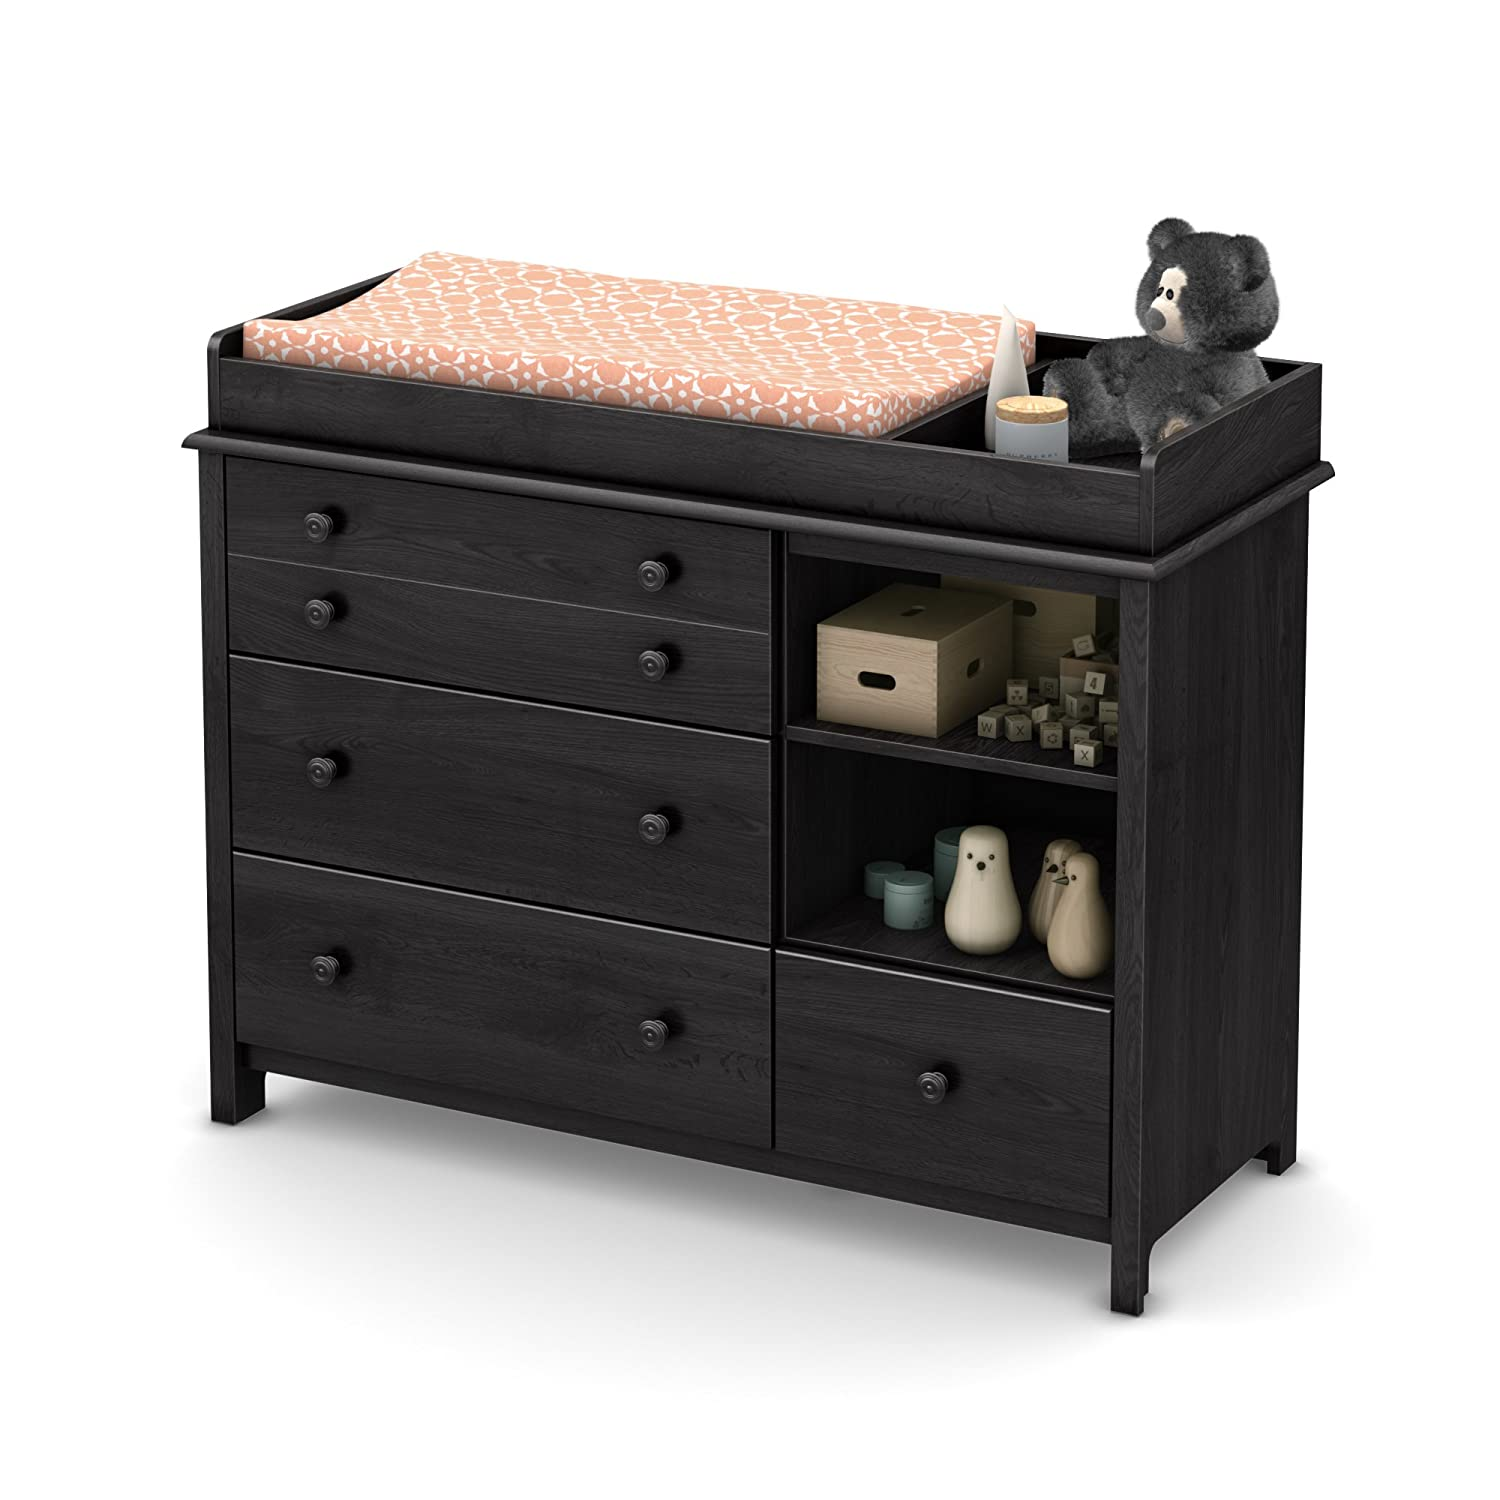 South Shore Convertible Changing Table with Storage Drawers and Removable Changing Station, Espresso 3759337